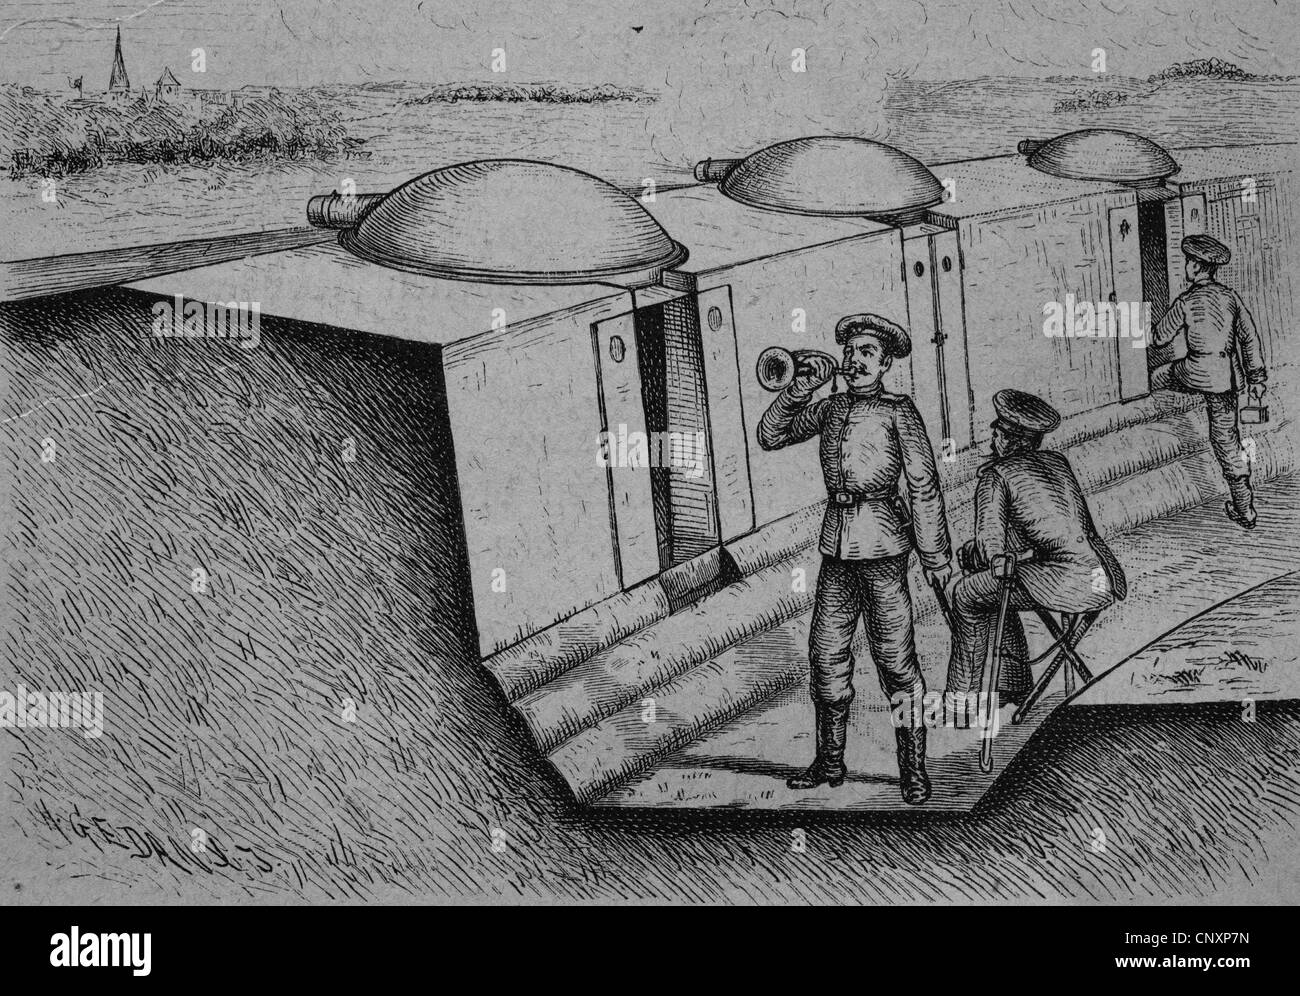 Trenches with wheeled armored turrets, historical engraving, circa 1885 - Stock Image